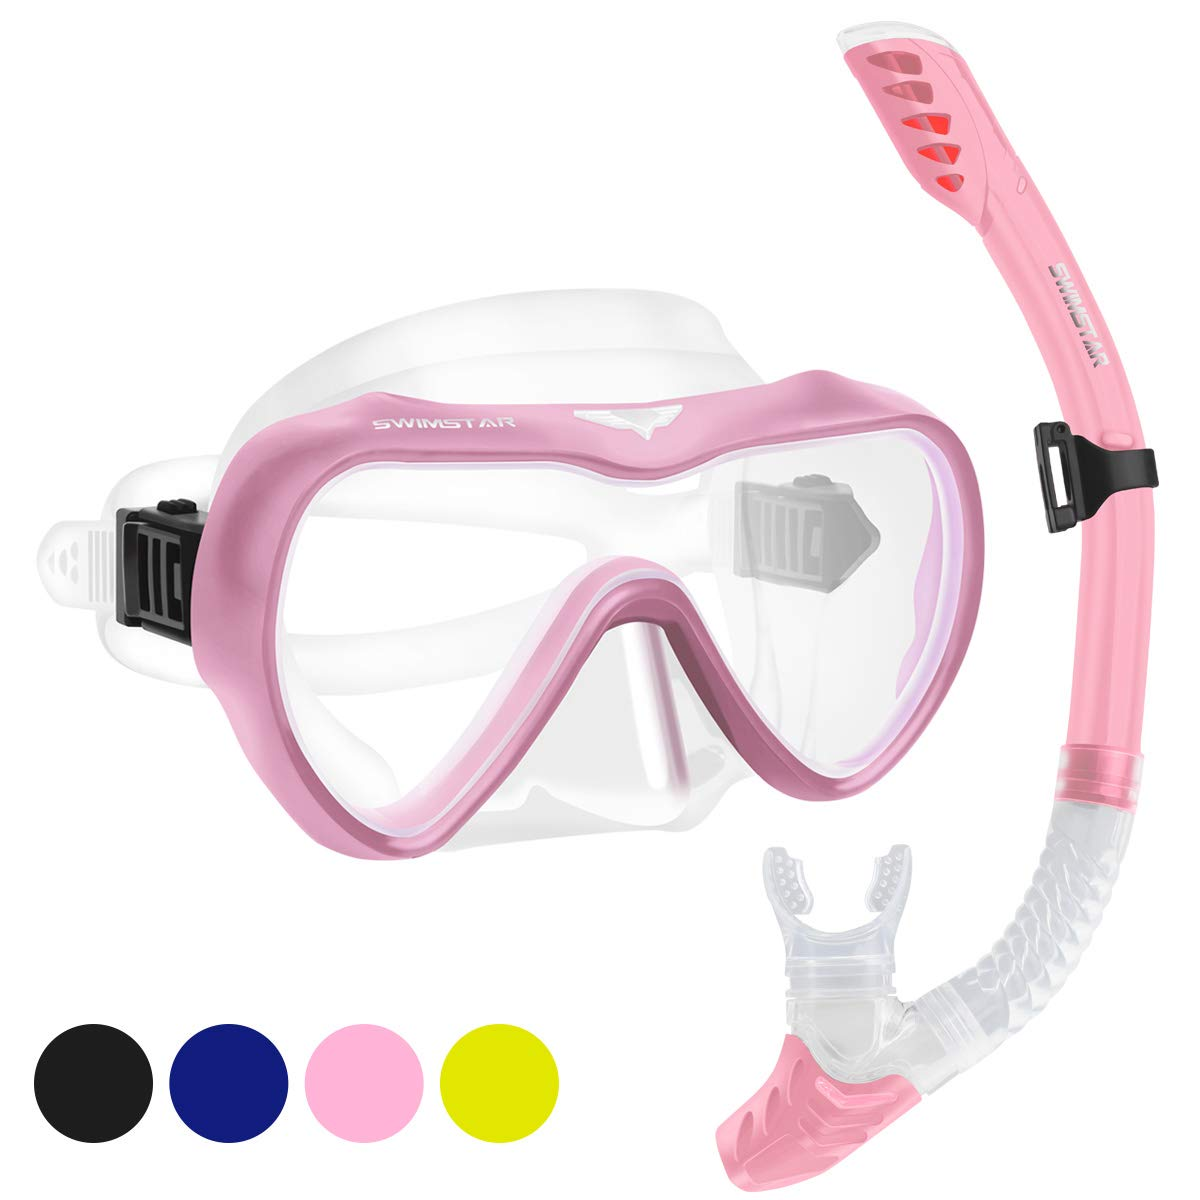 2019 Snorkel Set for Women and Men, Anti Fog Tempered Glass Snorkel Mask for Snorkeling, Swimming and Scuba Diving, Anti Leak Dry Top Snorkeling Gear Panoramic Silicone Goggle No Leak Pink by SwimStar